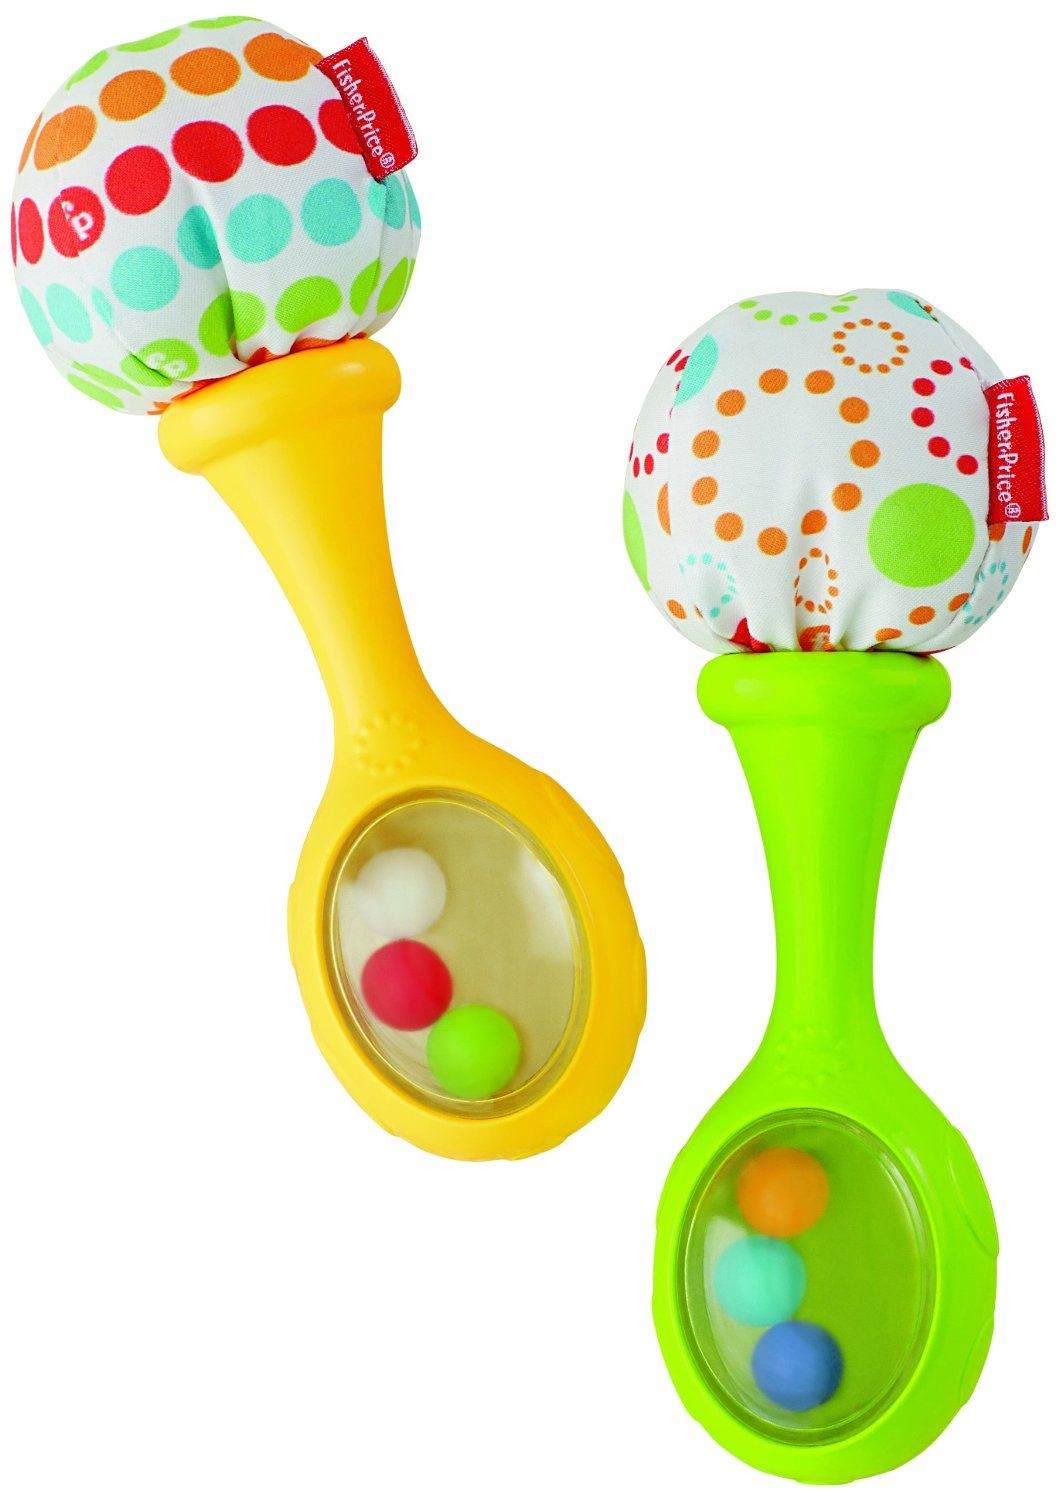 Rattle N Rock Maracas Musical Perfect For Babys Sensory Skills Gross Motor Skills Colorful Beads With Rattle Sounds Will Delight Babies